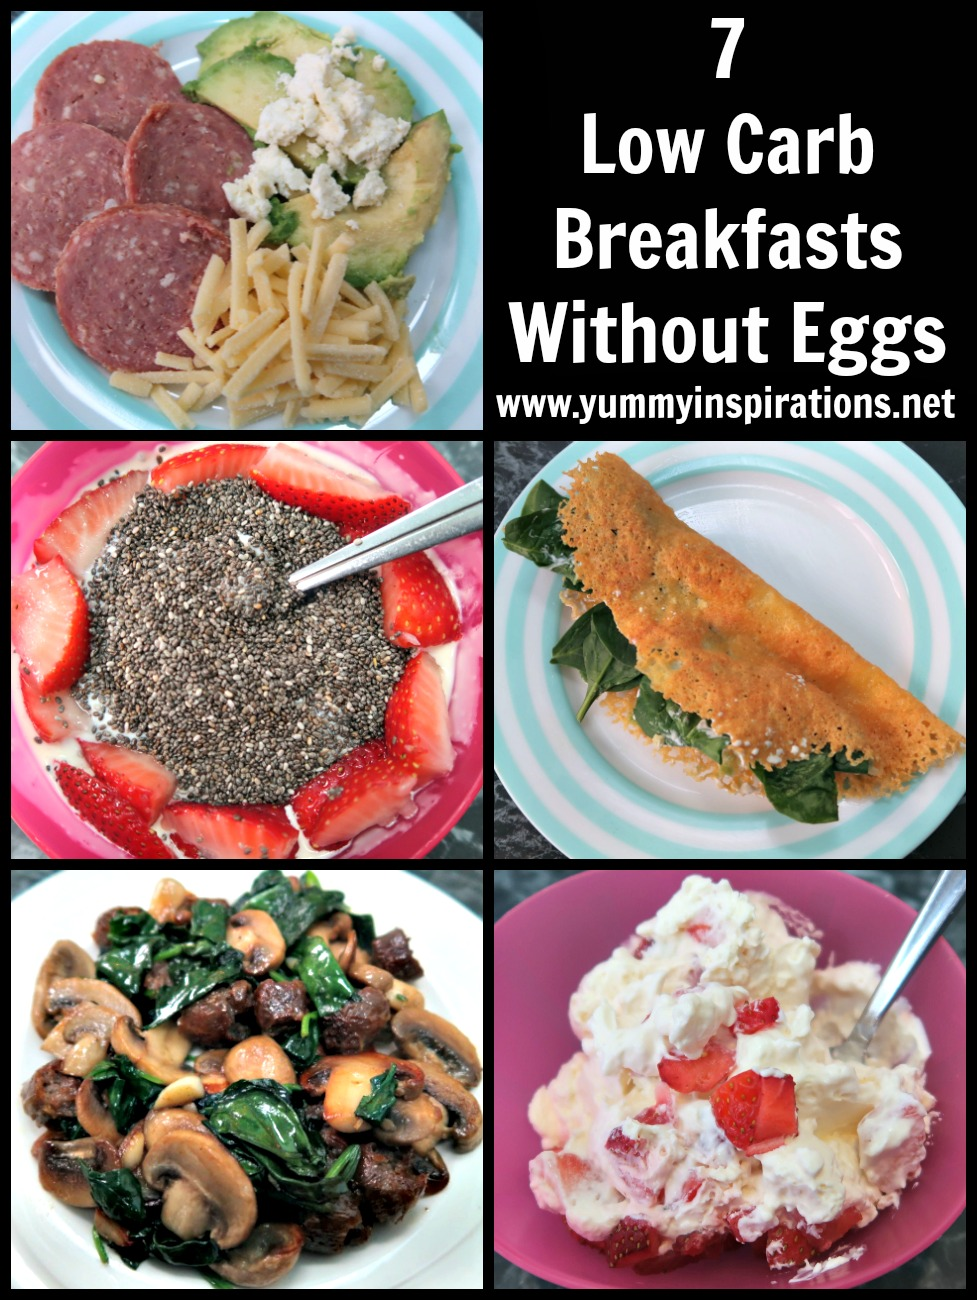 7 Low Carb Breakfast Without Eggs Ideas - Easy Keto Breakfasts With No Eggs - Eggless Ketosis Breakfast Recipes Other Than Eggs.